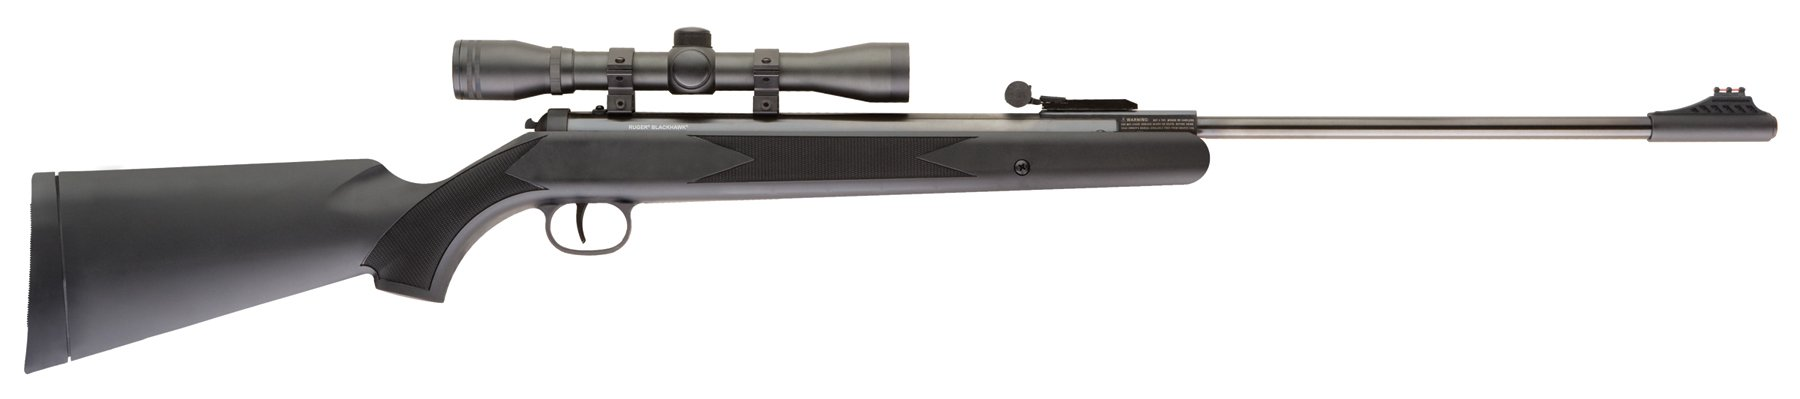 Ruger Blackhawk Combo Air Rifle Review